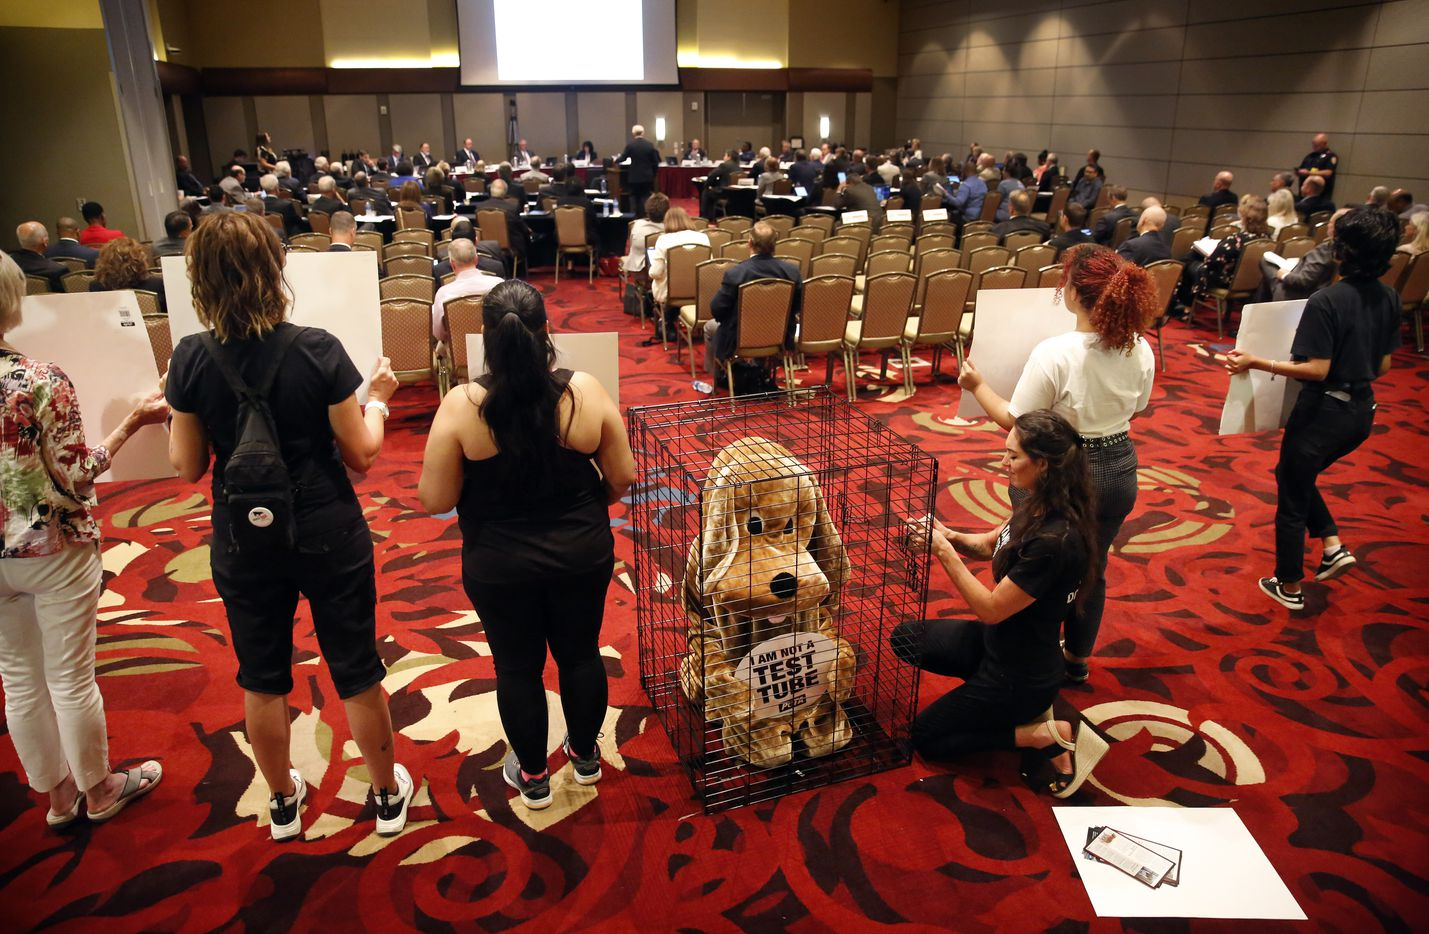 PETA supporter Dani Alexander (center, right) checks on Shane Phoenix, who was dressed in costume as a dog in a cage, during the Texas A&M University's (TAMU) Board of Regents meeting, on August 8, 2019.